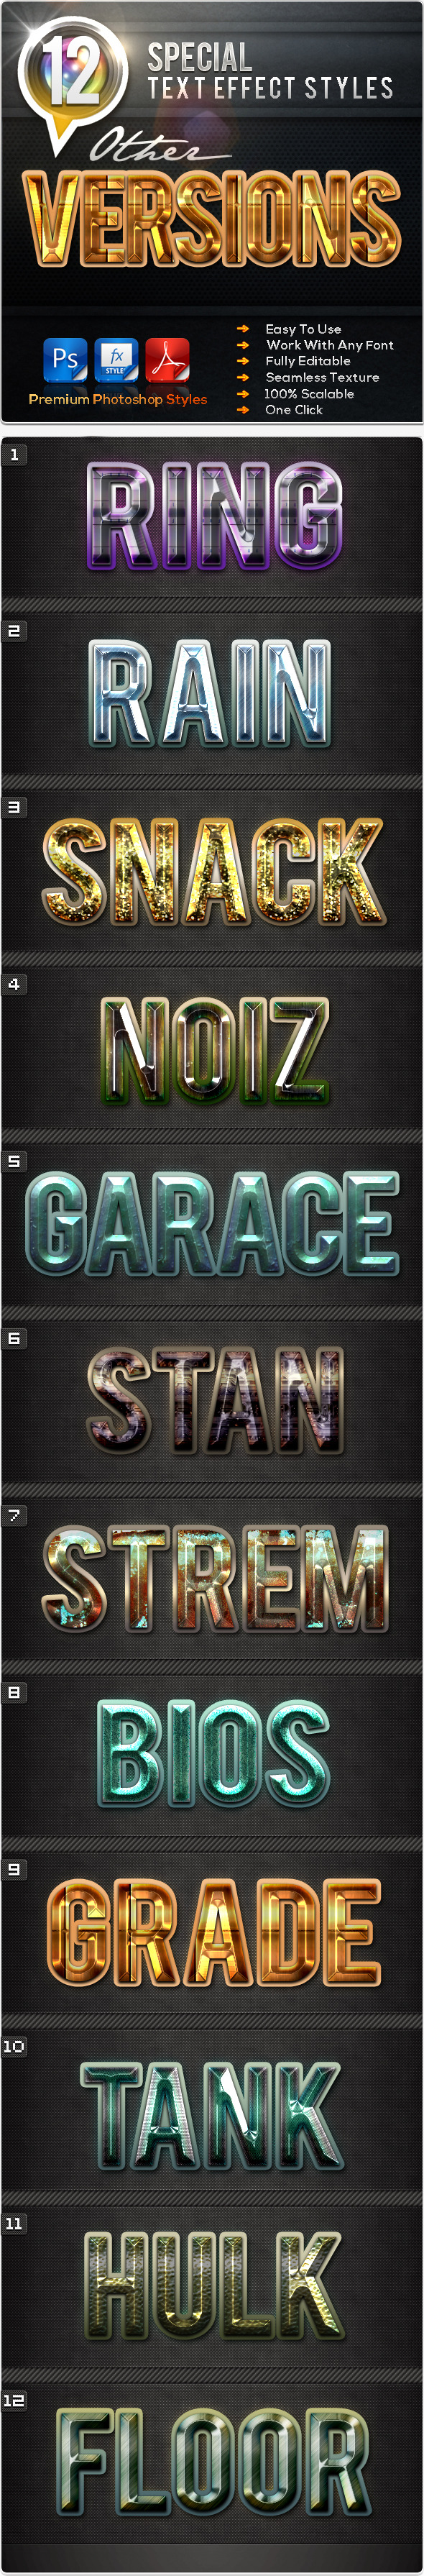 12 Special Other Versions - Text Effects Styles